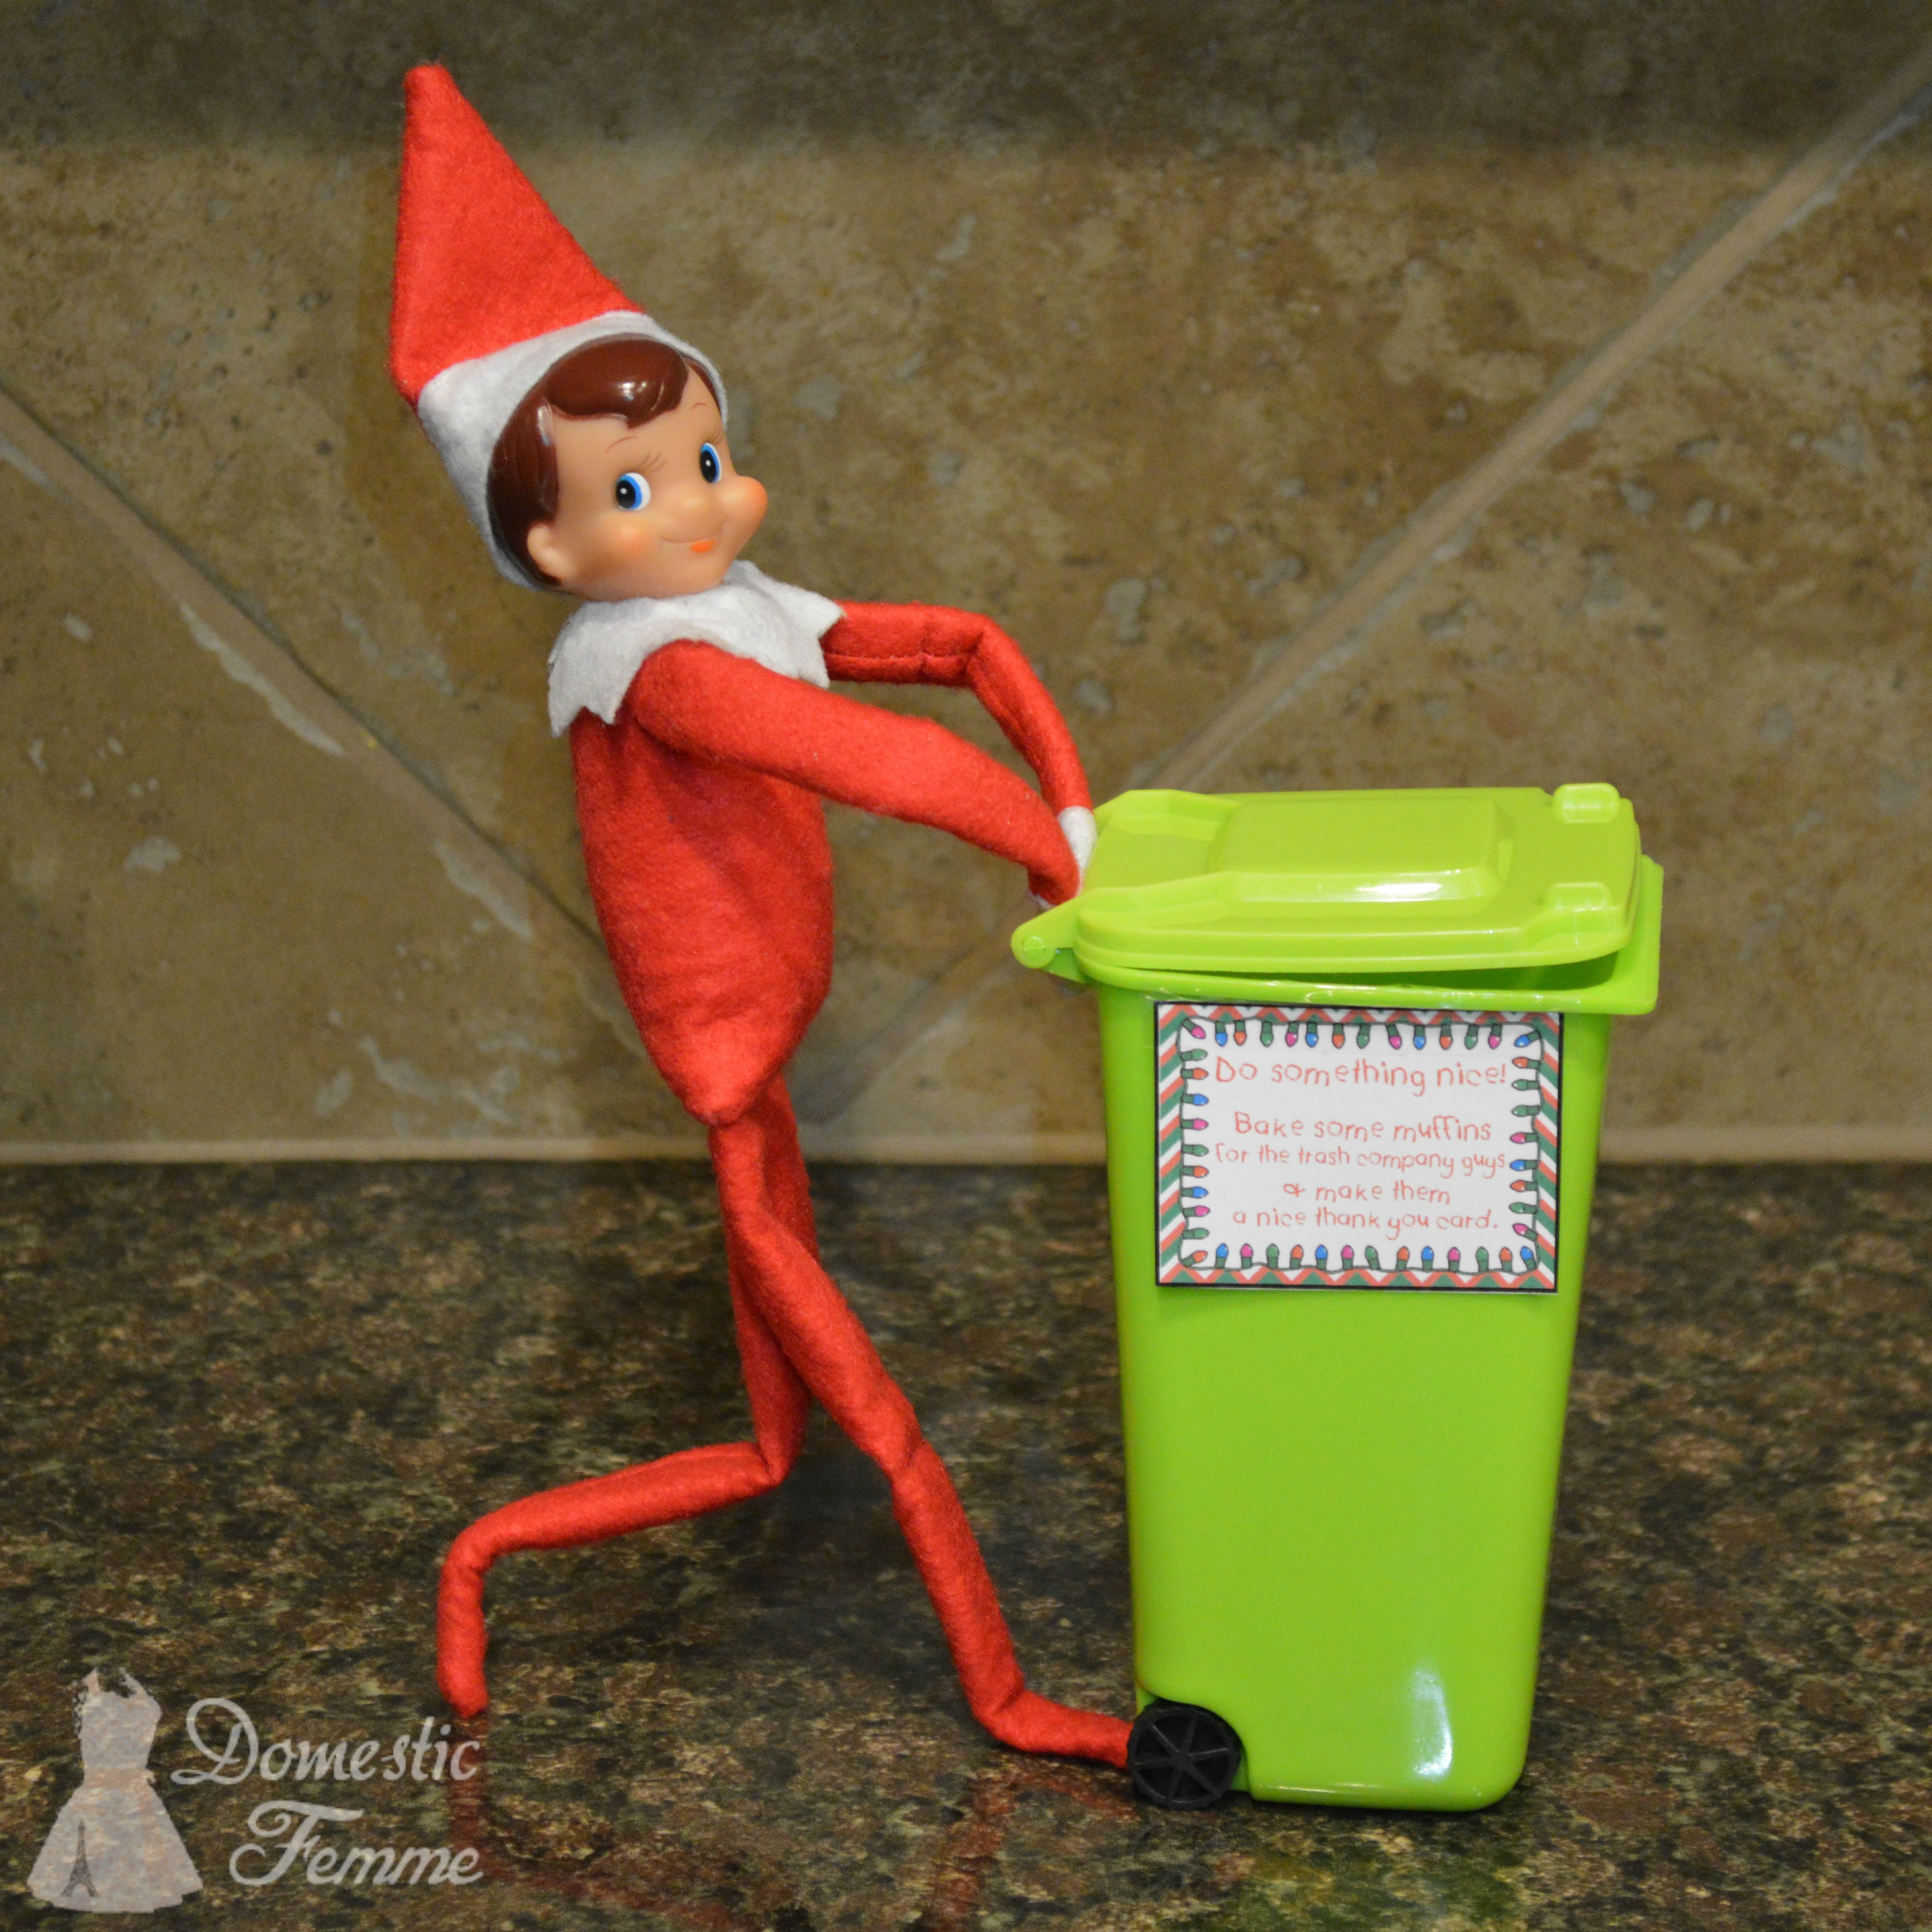 Bake muffins for the trash company guys  Elf On The Shelf 2015 Calendar 25  Elf On The Se Bake muffins for the trash company guys  Elf On The Shelf 2015 Calendar 25  Elf...